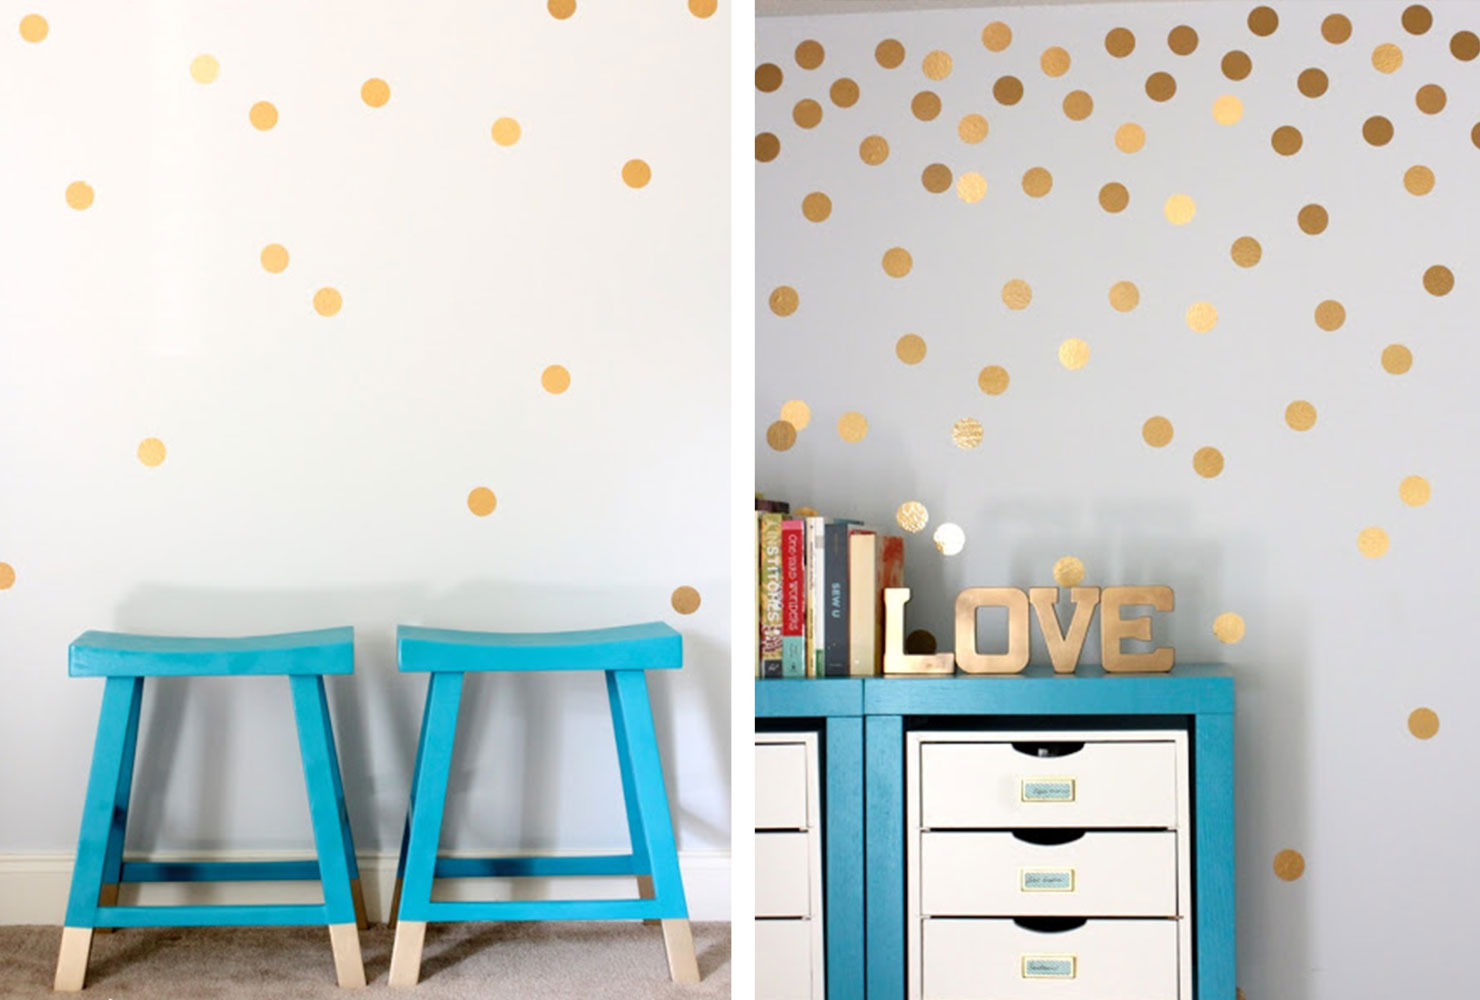 Best 55 Diy Room Decor Ideas To Decorate Your Home Shutterfly This Month